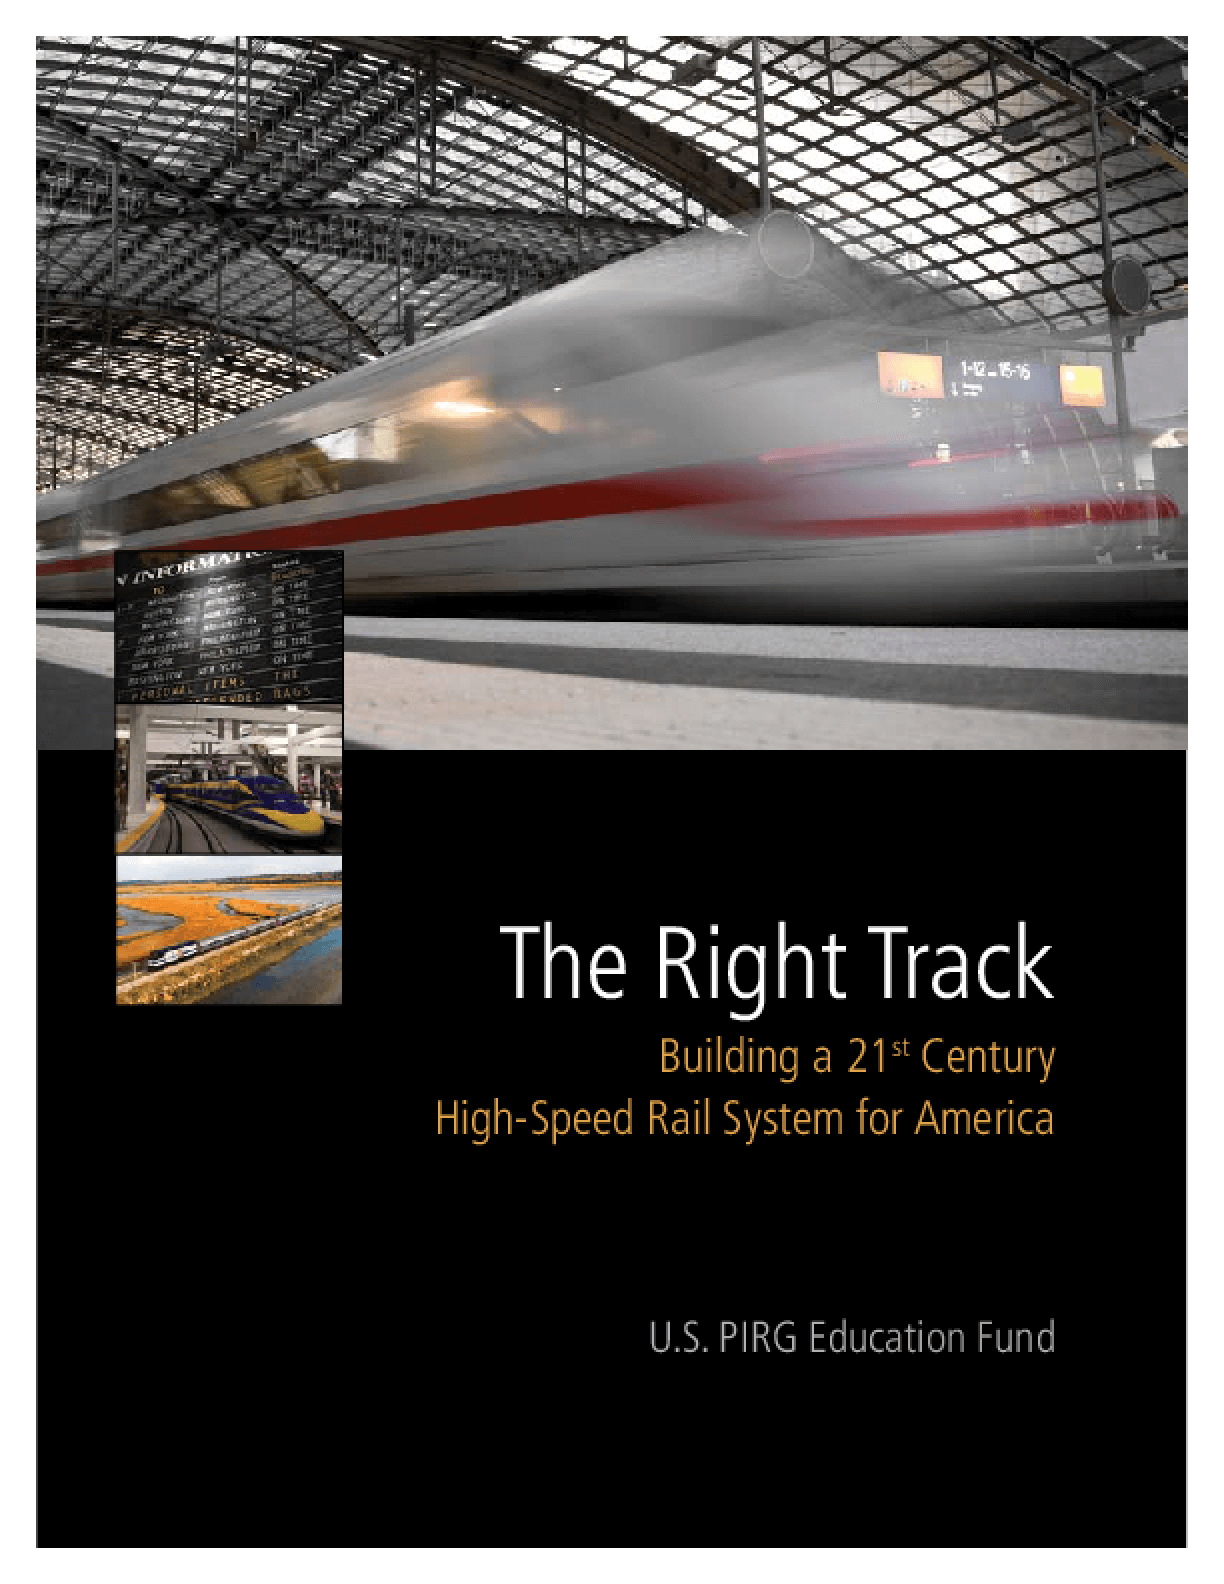 The Right Track: Building a 21st Century High-Speed Rail System for America